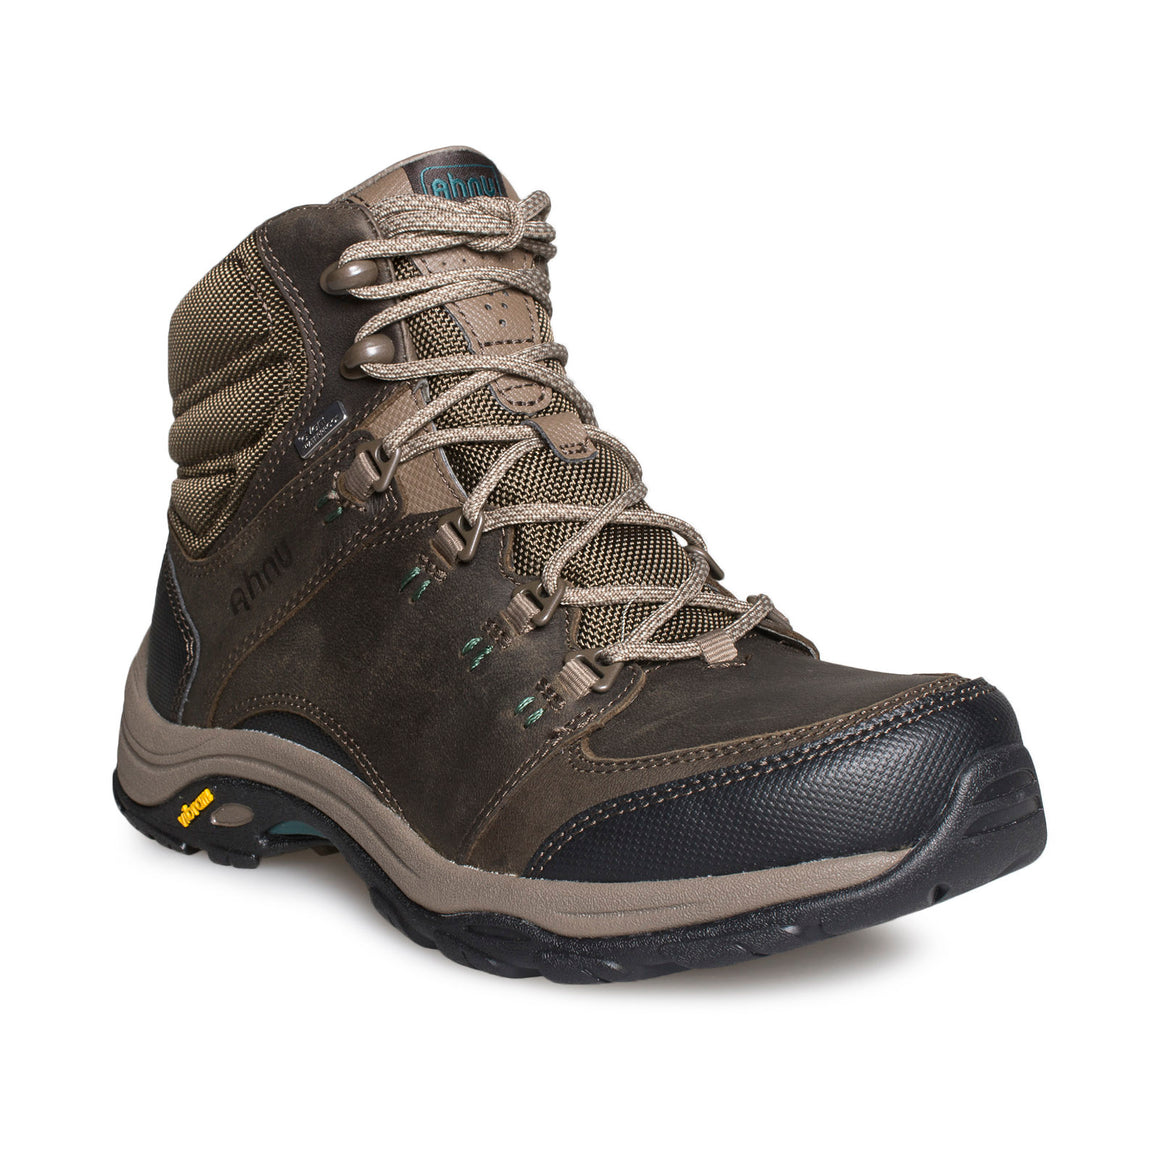 Ahnu Montara III Boot Event FG Dark Brown - Women's